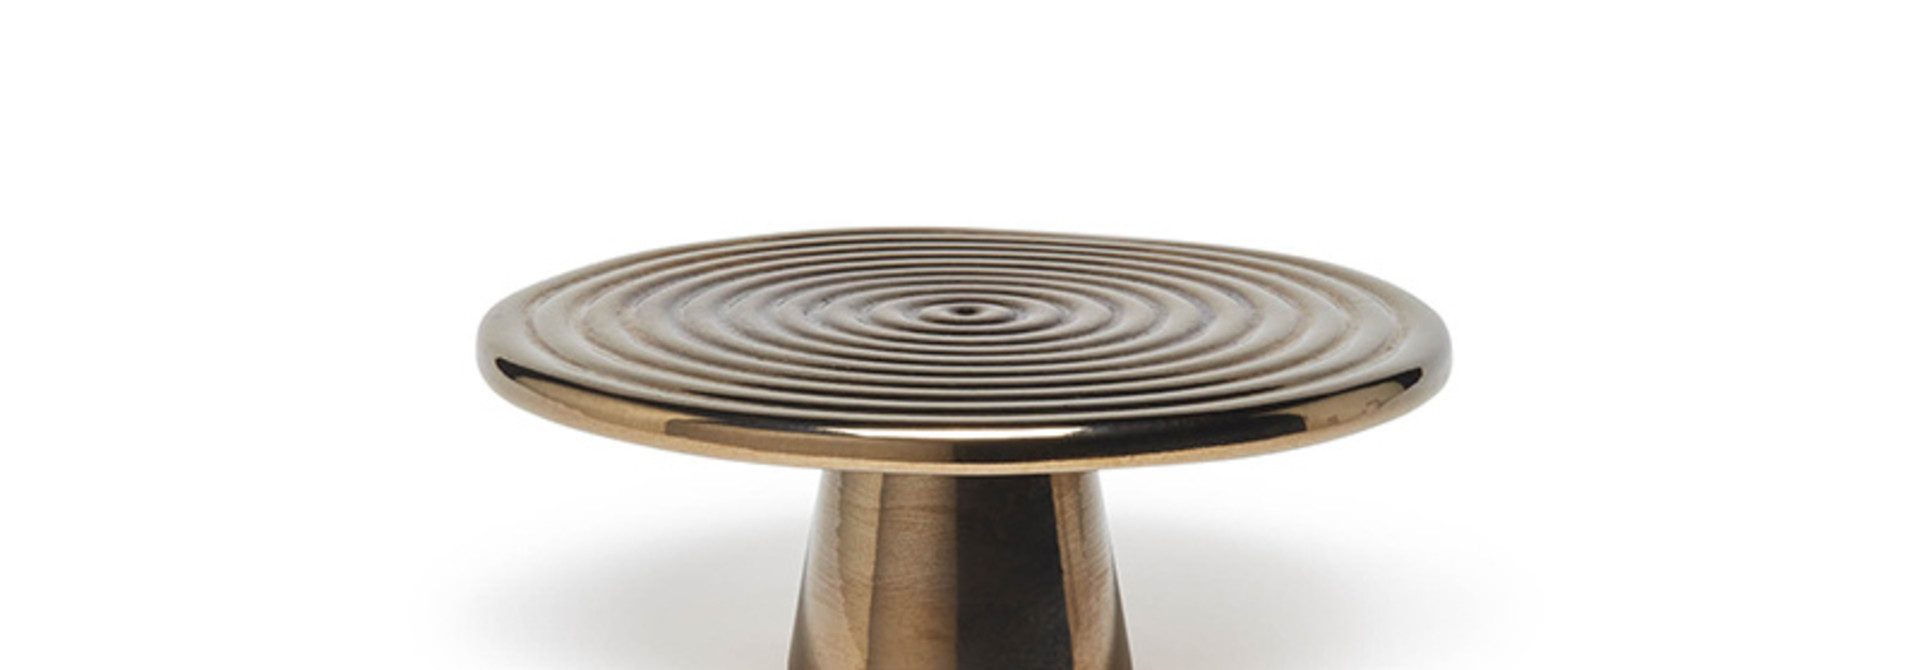 Food/Cake Stand - Platinum - Sm